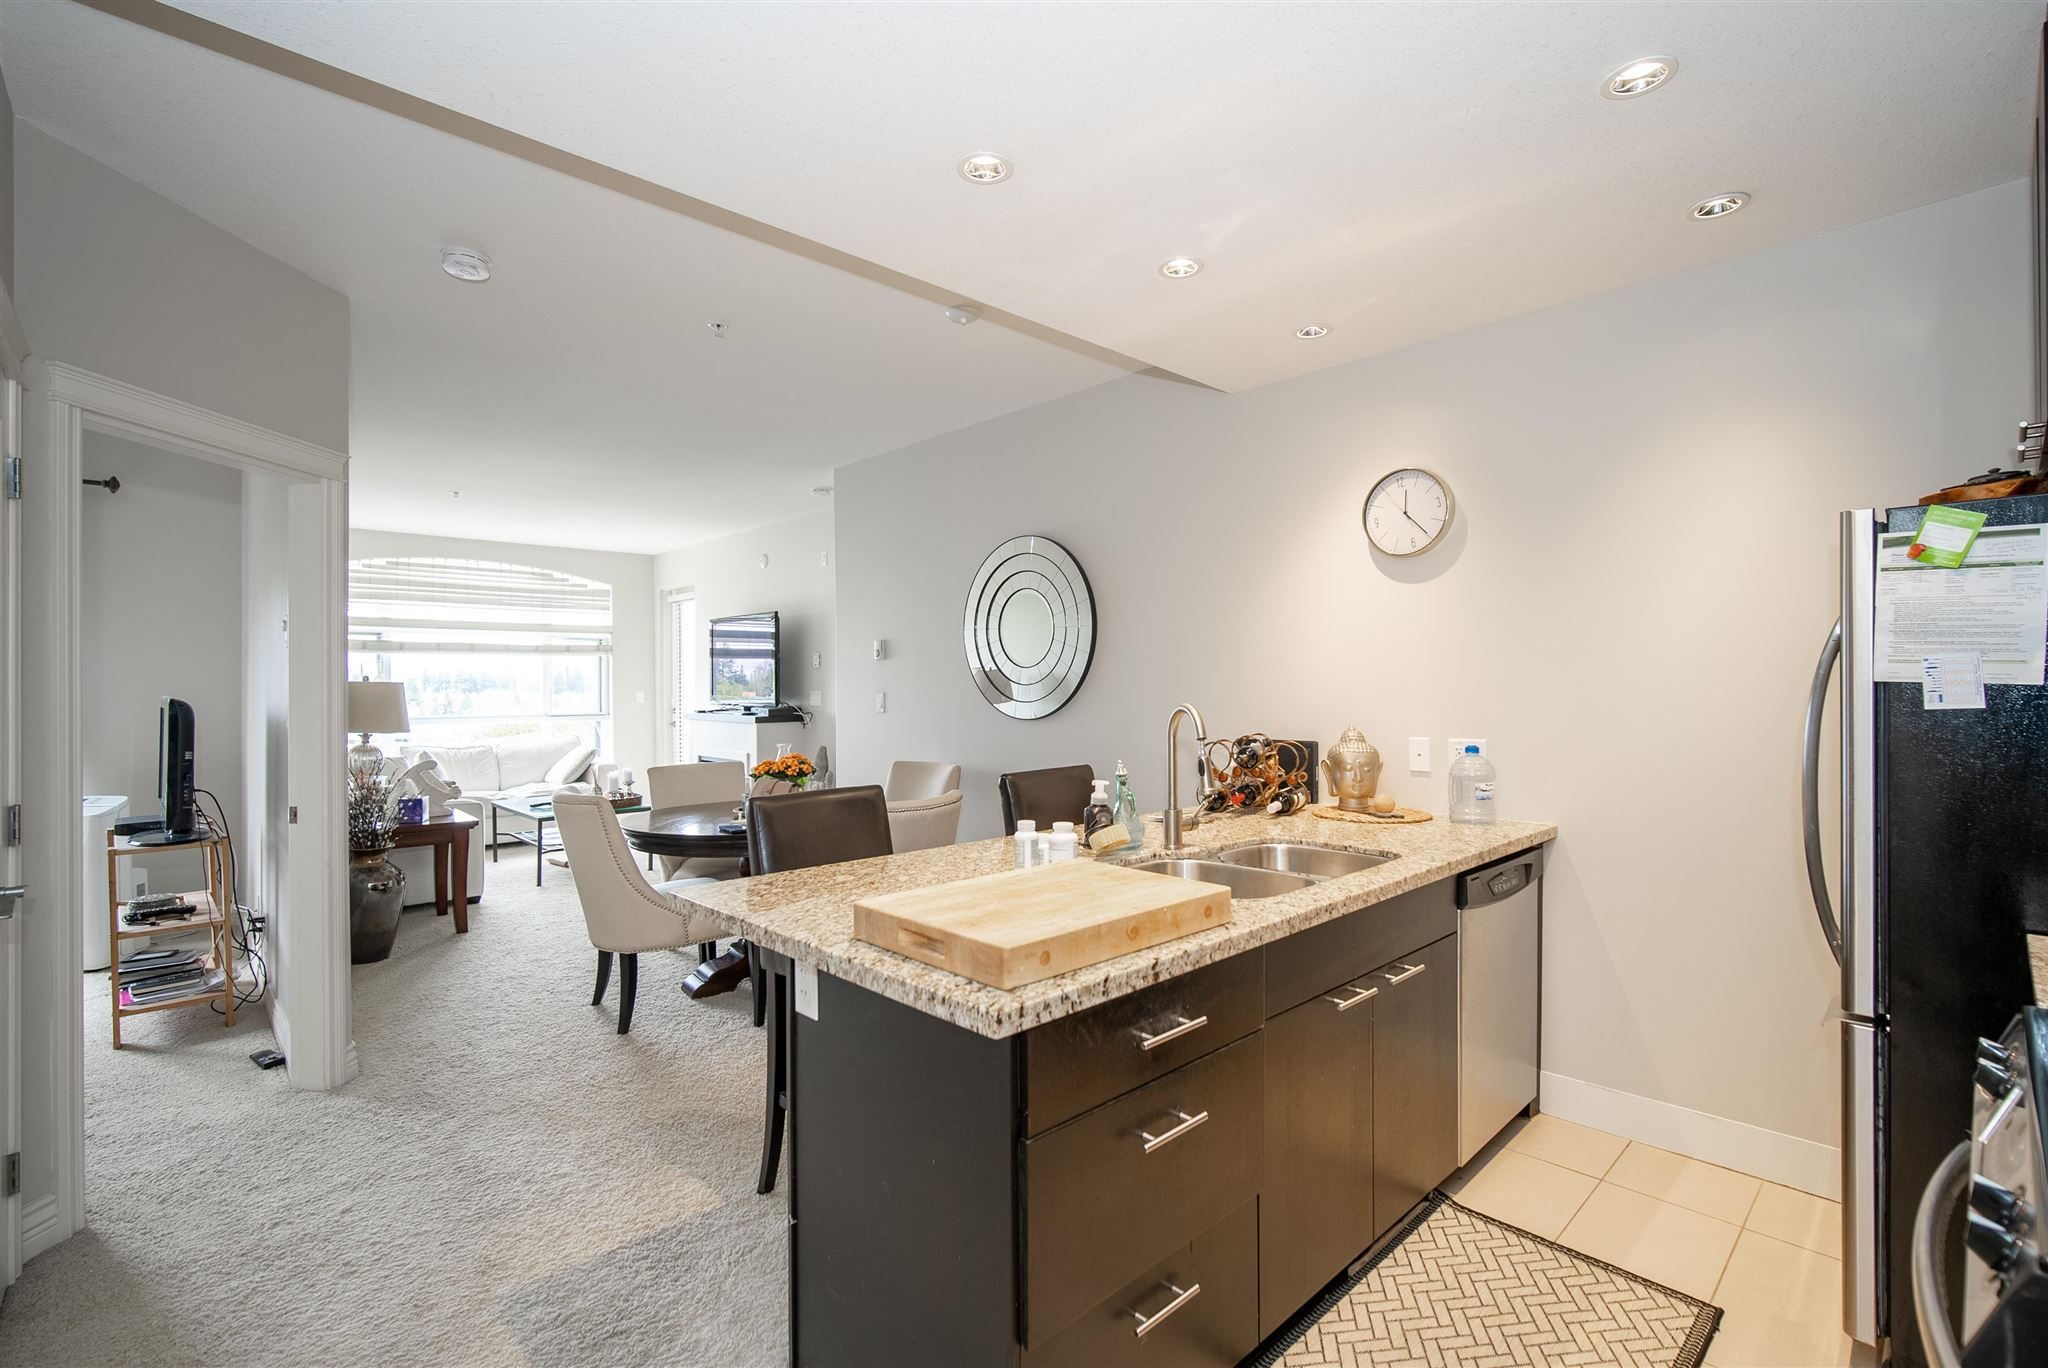 """Main Photo: 301 2970 KING GEORGE Boulevard in Surrey: King George Corridor Condo for sale in """"The Watermark"""" (South Surrey White Rock)  : MLS®# R2603504"""